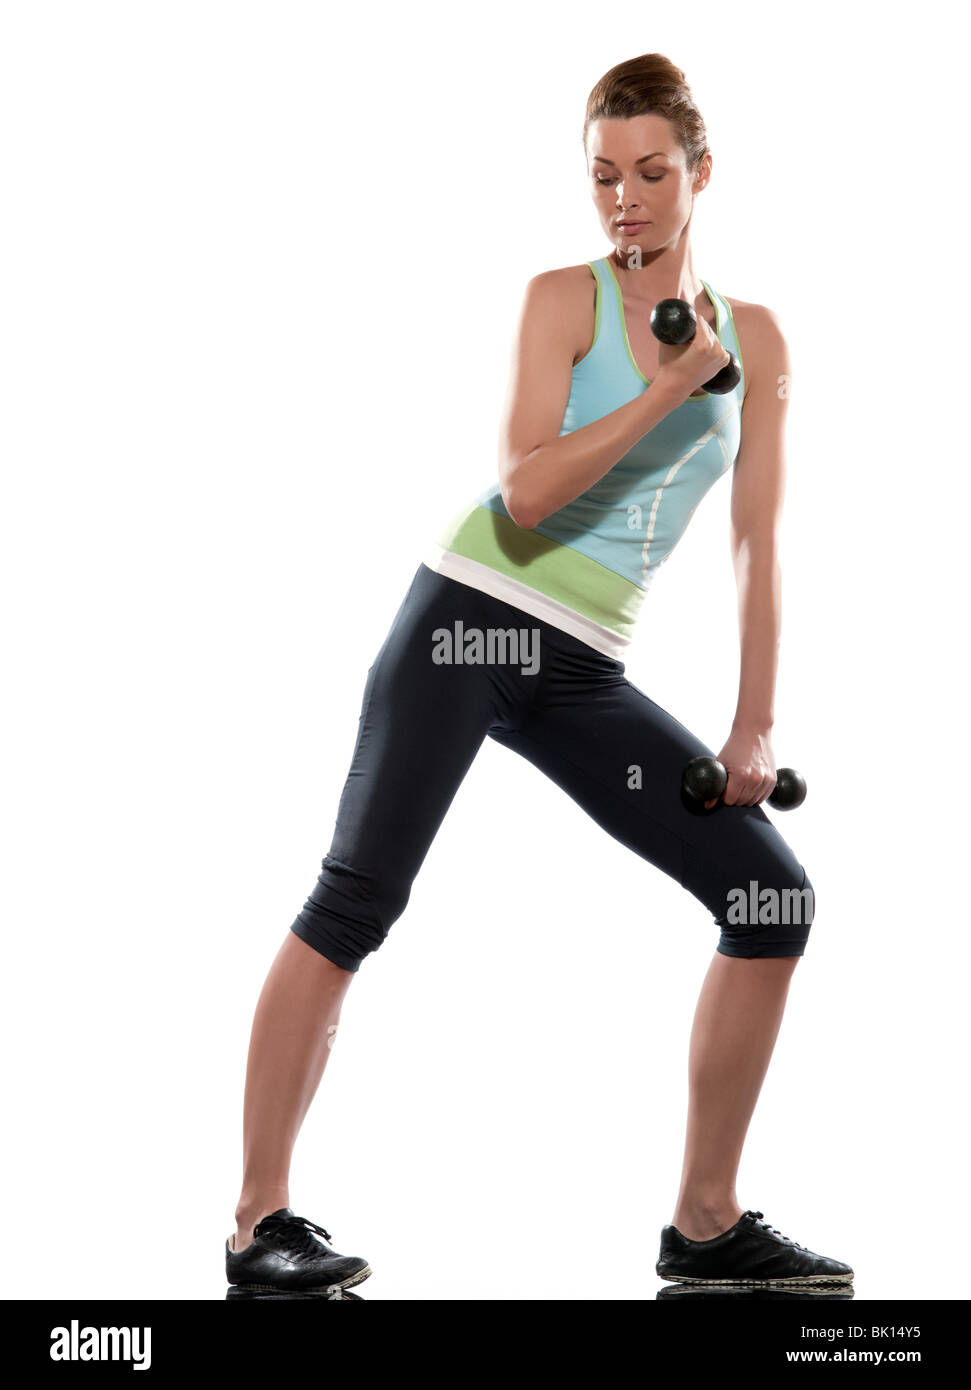 woman doing biceps workout on white isolated background - Stock Image